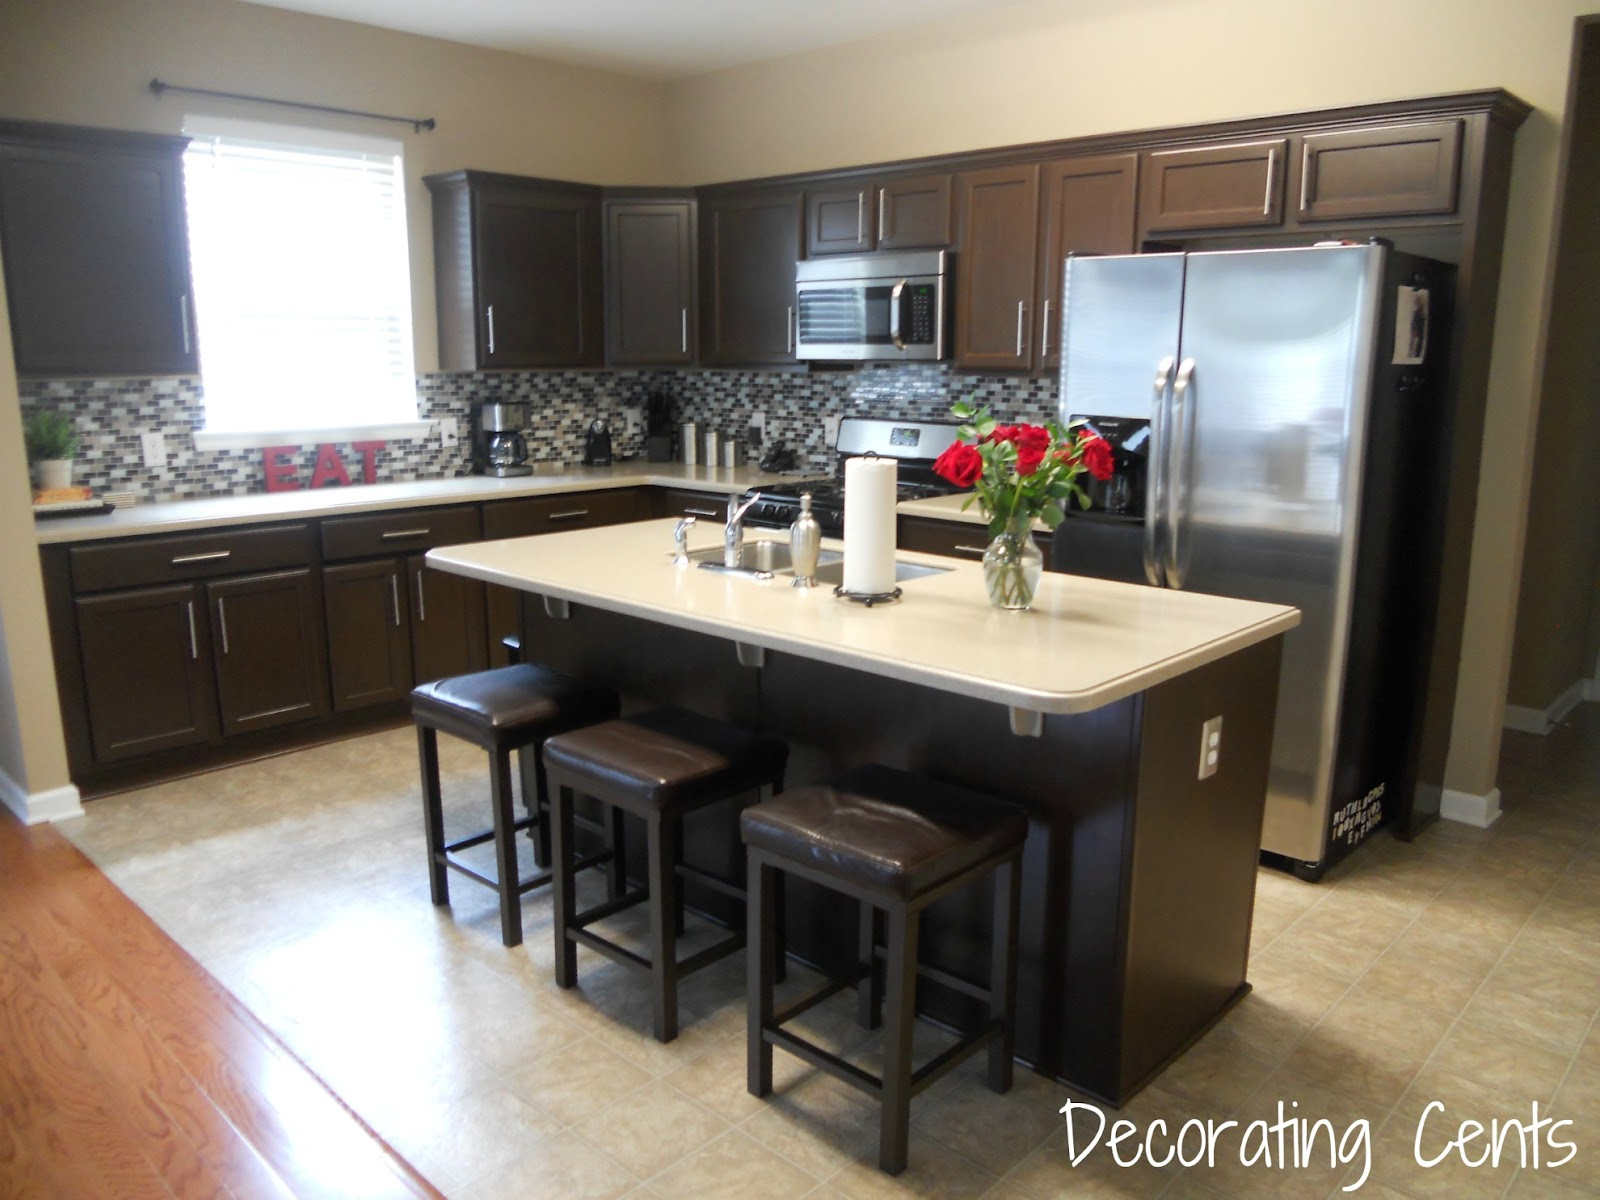 Decorating cents kitchen cabinets revealed for New kitchen color ideas